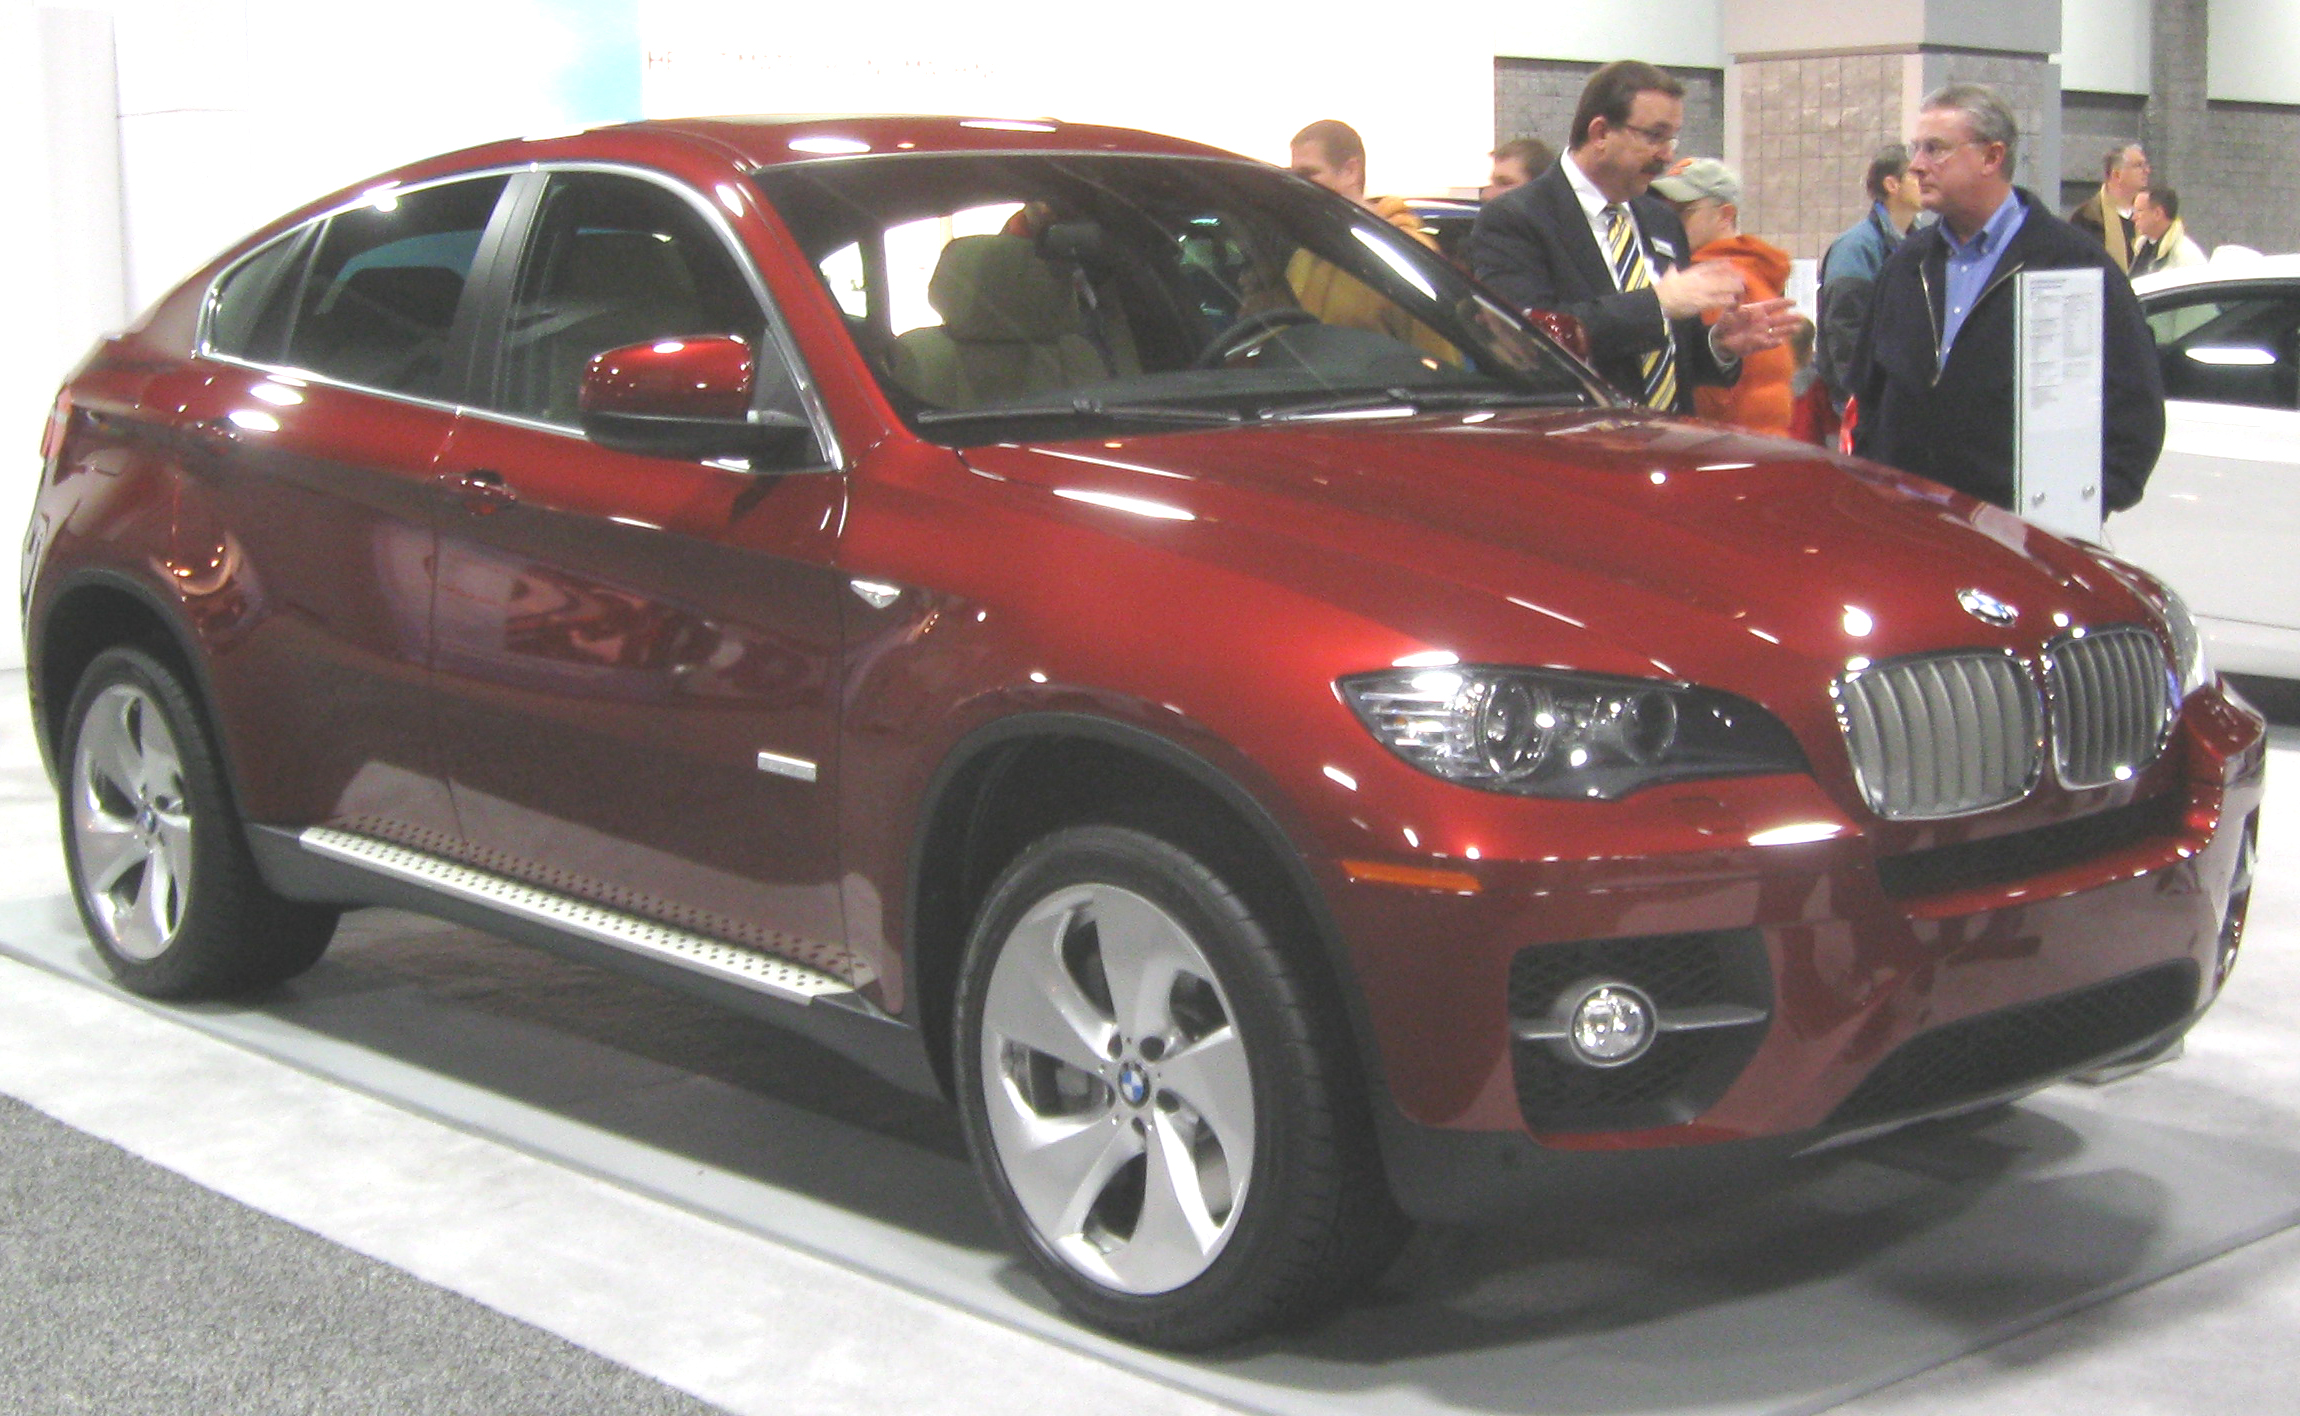 File:2010 BMW ActiveHybrid X6 -- 2010 DC.jpg - Wikimedia Commons